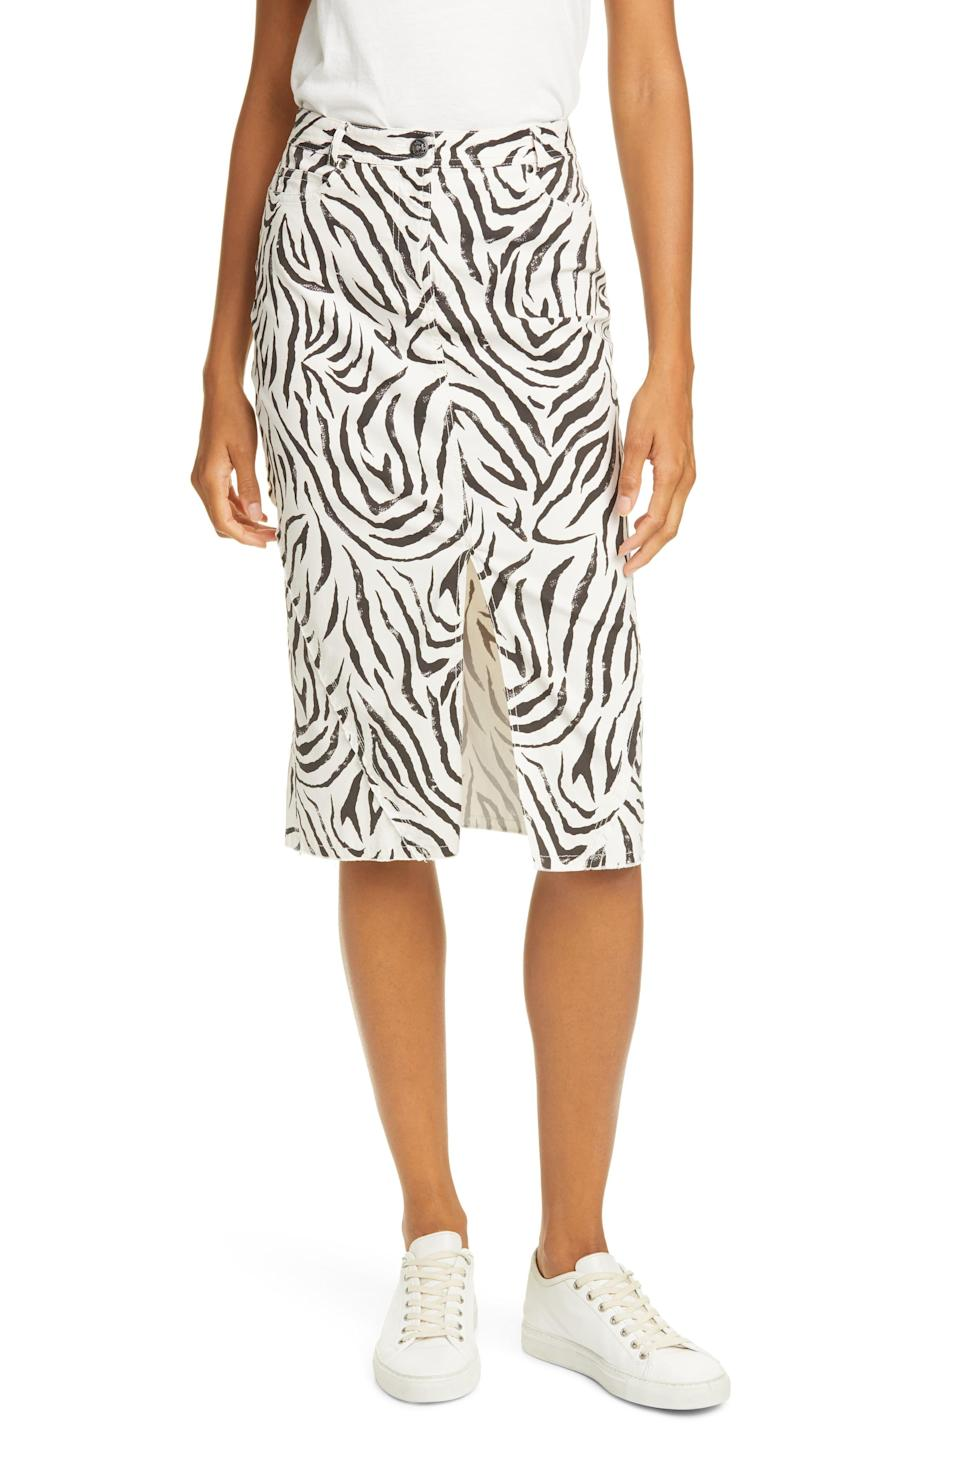 """<p><strong>ATM </strong></p><p>nordstrom.com</p><p><strong>$88.50</strong></p><p><a href=""""https://go.redirectingat.com?id=74968X1596630&url=https%3A%2F%2Fshop.nordstrom.com%2Fs%2Fatm-anthony-thomas-melillo-zebra-print-denim-skirt%2F5441203&sref=https%3A%2F%2Fwww.marieclaire.com%2Ffashion%2Fstreet-style%2Fg32046163%2Fbest-denim-skirts%2F"""" rel=""""nofollow noopener"""" target=""""_blank"""" data-ylk=""""slk:Shop It"""" class=""""link rapid-noclick-resp"""">Shop It </a></p><p>For a bit of variety, try this graphic black-and-white animal print denim skirt. </p>"""